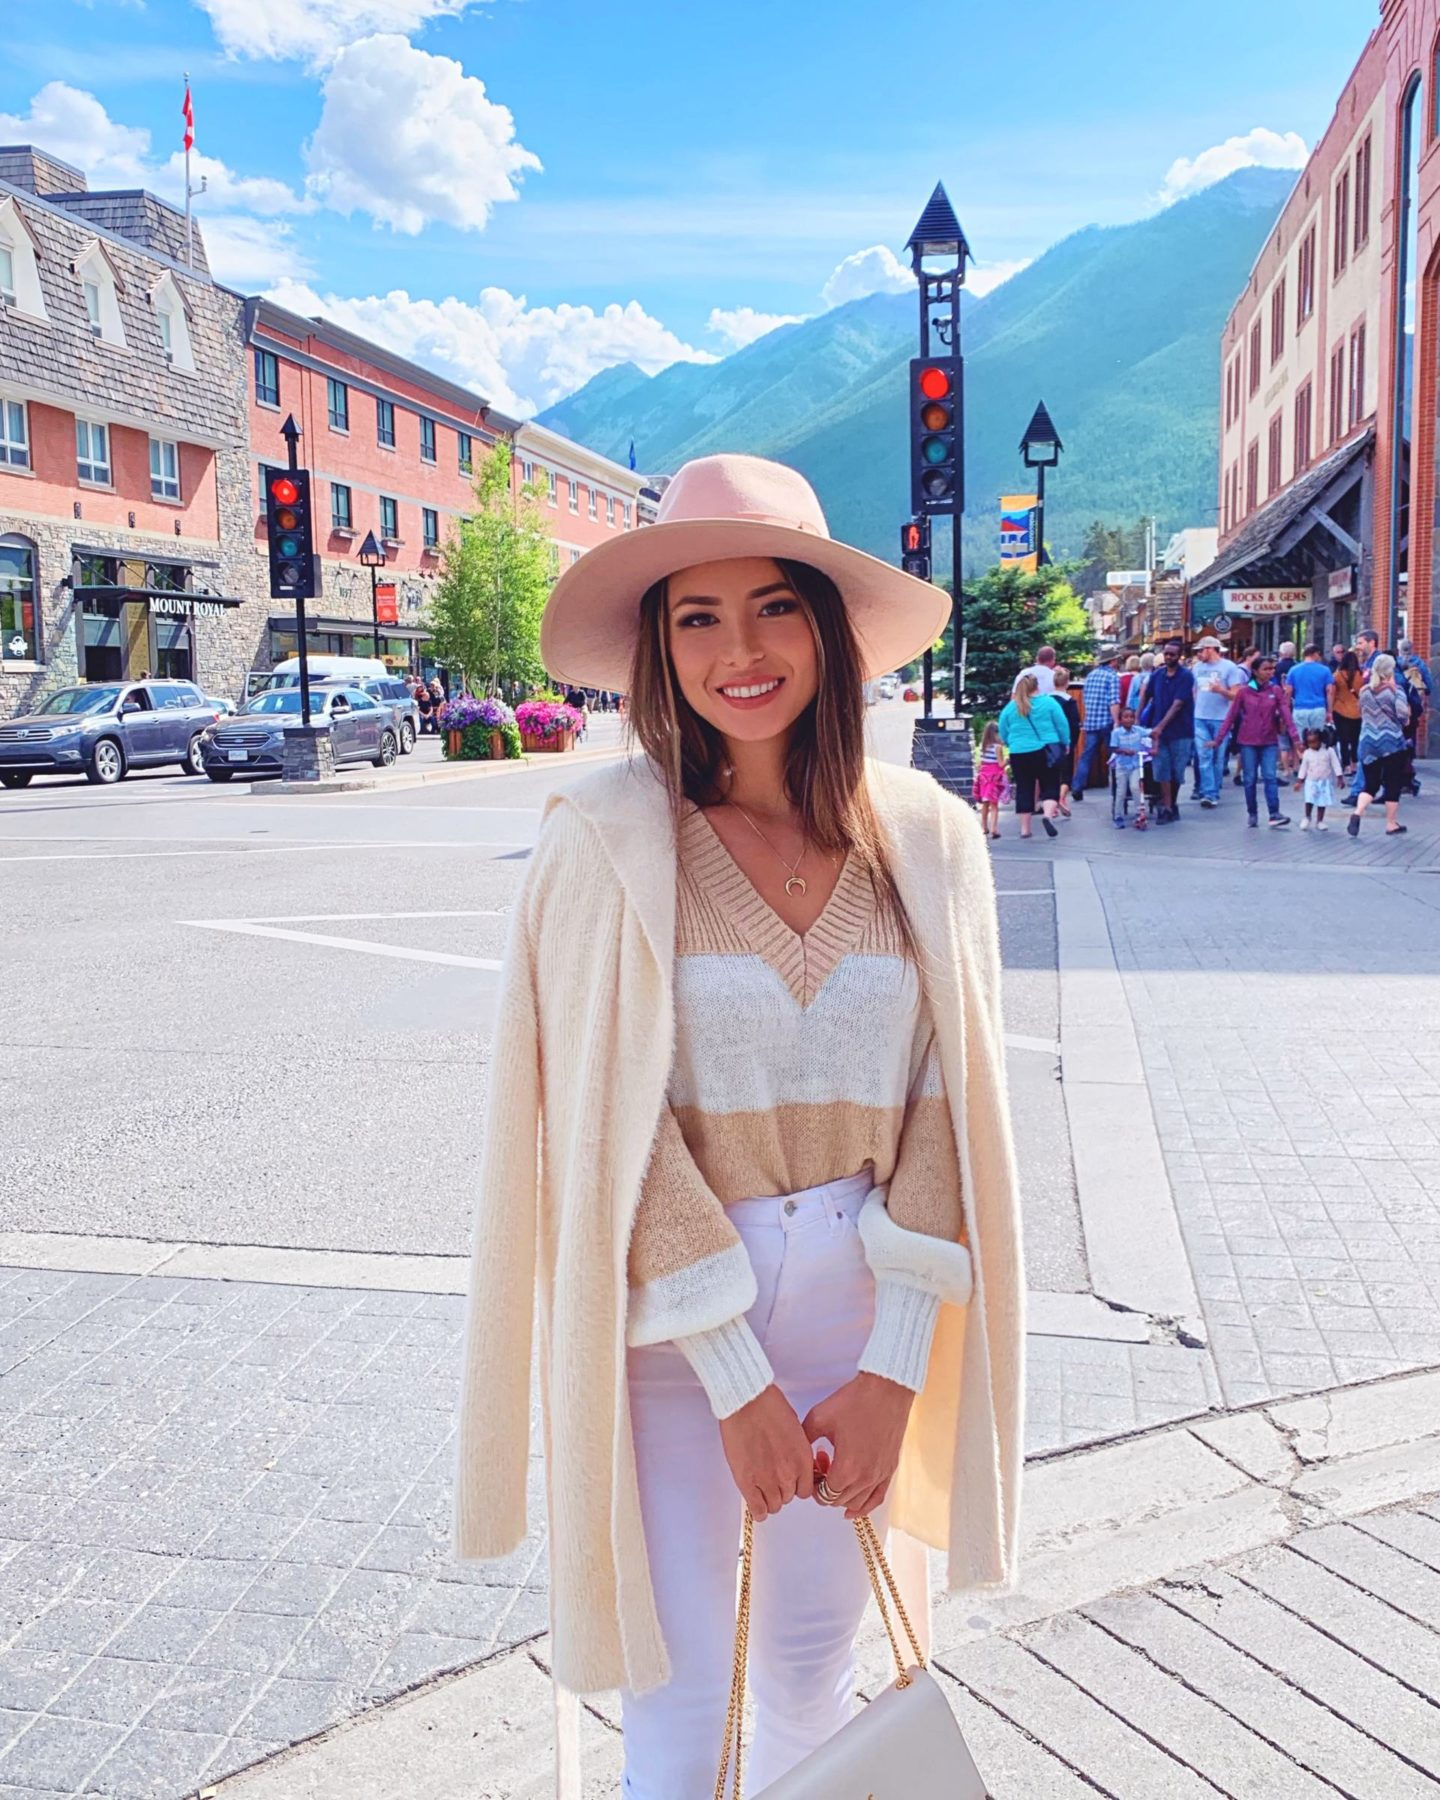 Lake Louise and Banff travel guide in the fall outfits hapatime